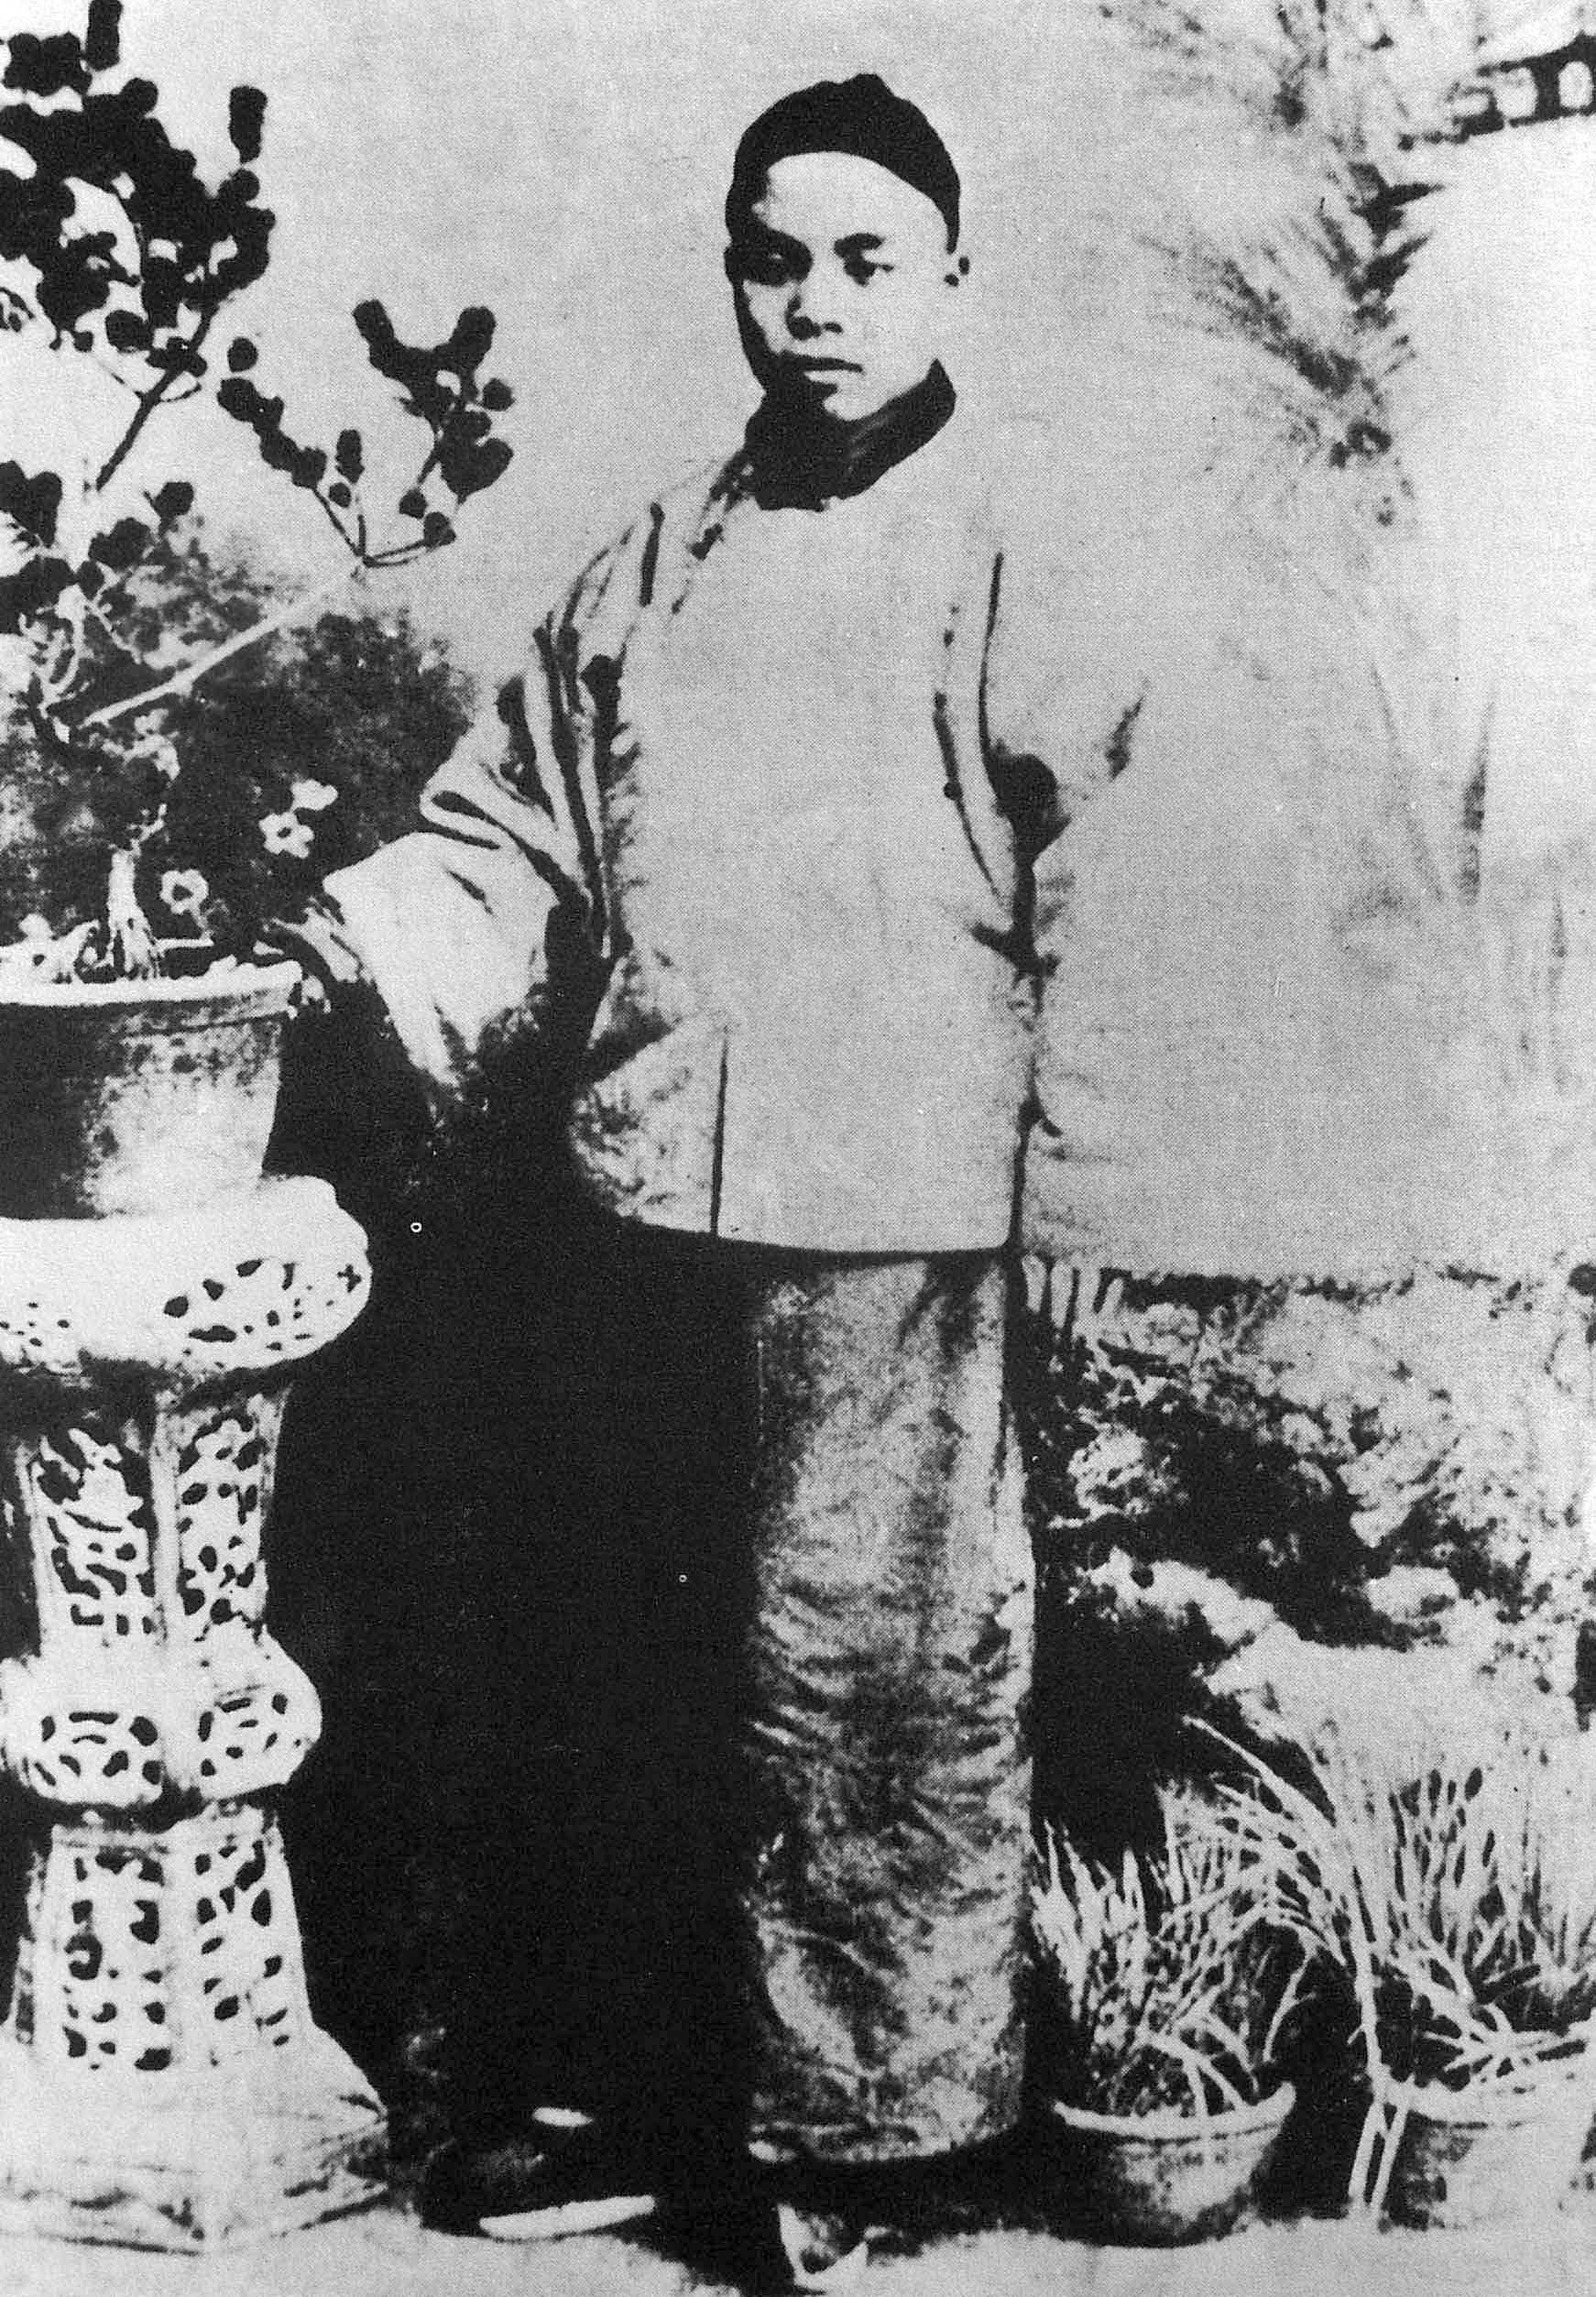 Lin Xu, a Chinese politician during the late Qing Dynasty, one of the Six Gentlemen executed by Empress Dowager Cixi after the Hundred Days' Reform